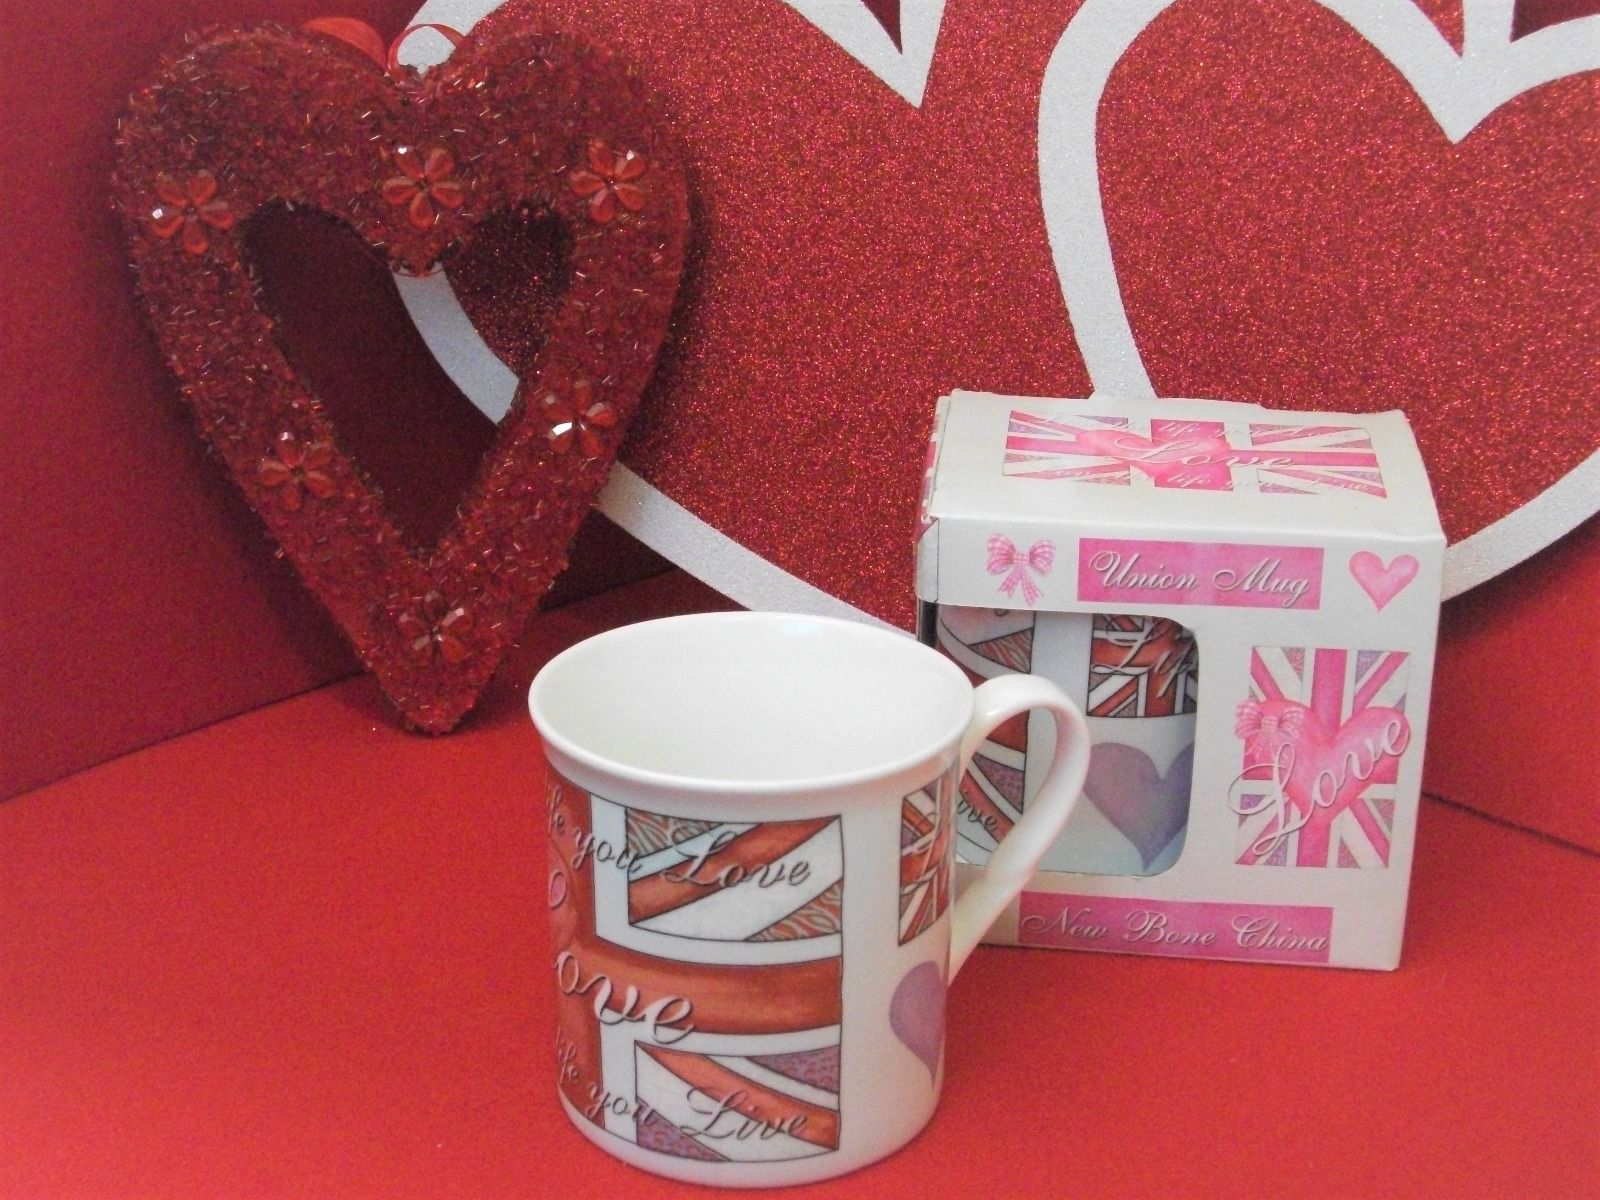 Union mug Love by Rebecca Rose Bone China NCM RR UNION 001